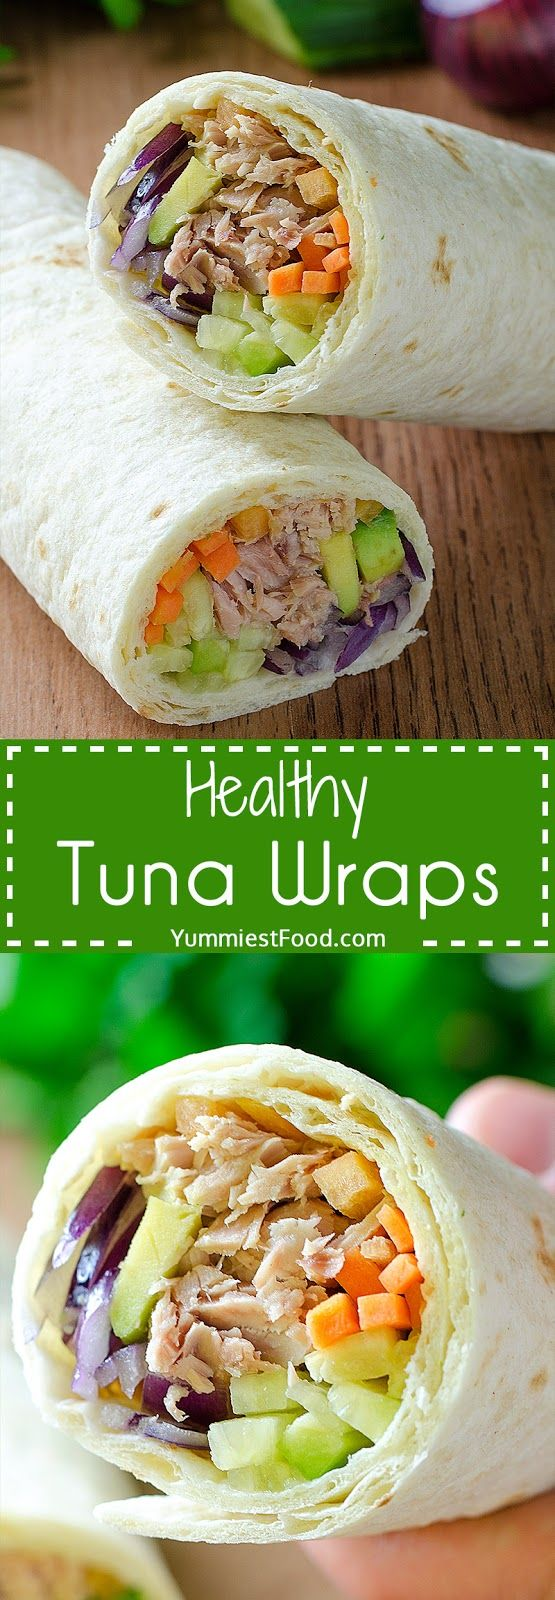 Healthy Tuna Wraps This Tasty Recipe Will Satisfy Your Appetite So Delicious And Low In Calories For 10 M Resep Masakan Resep Makanan Pembuka Resep Makanan